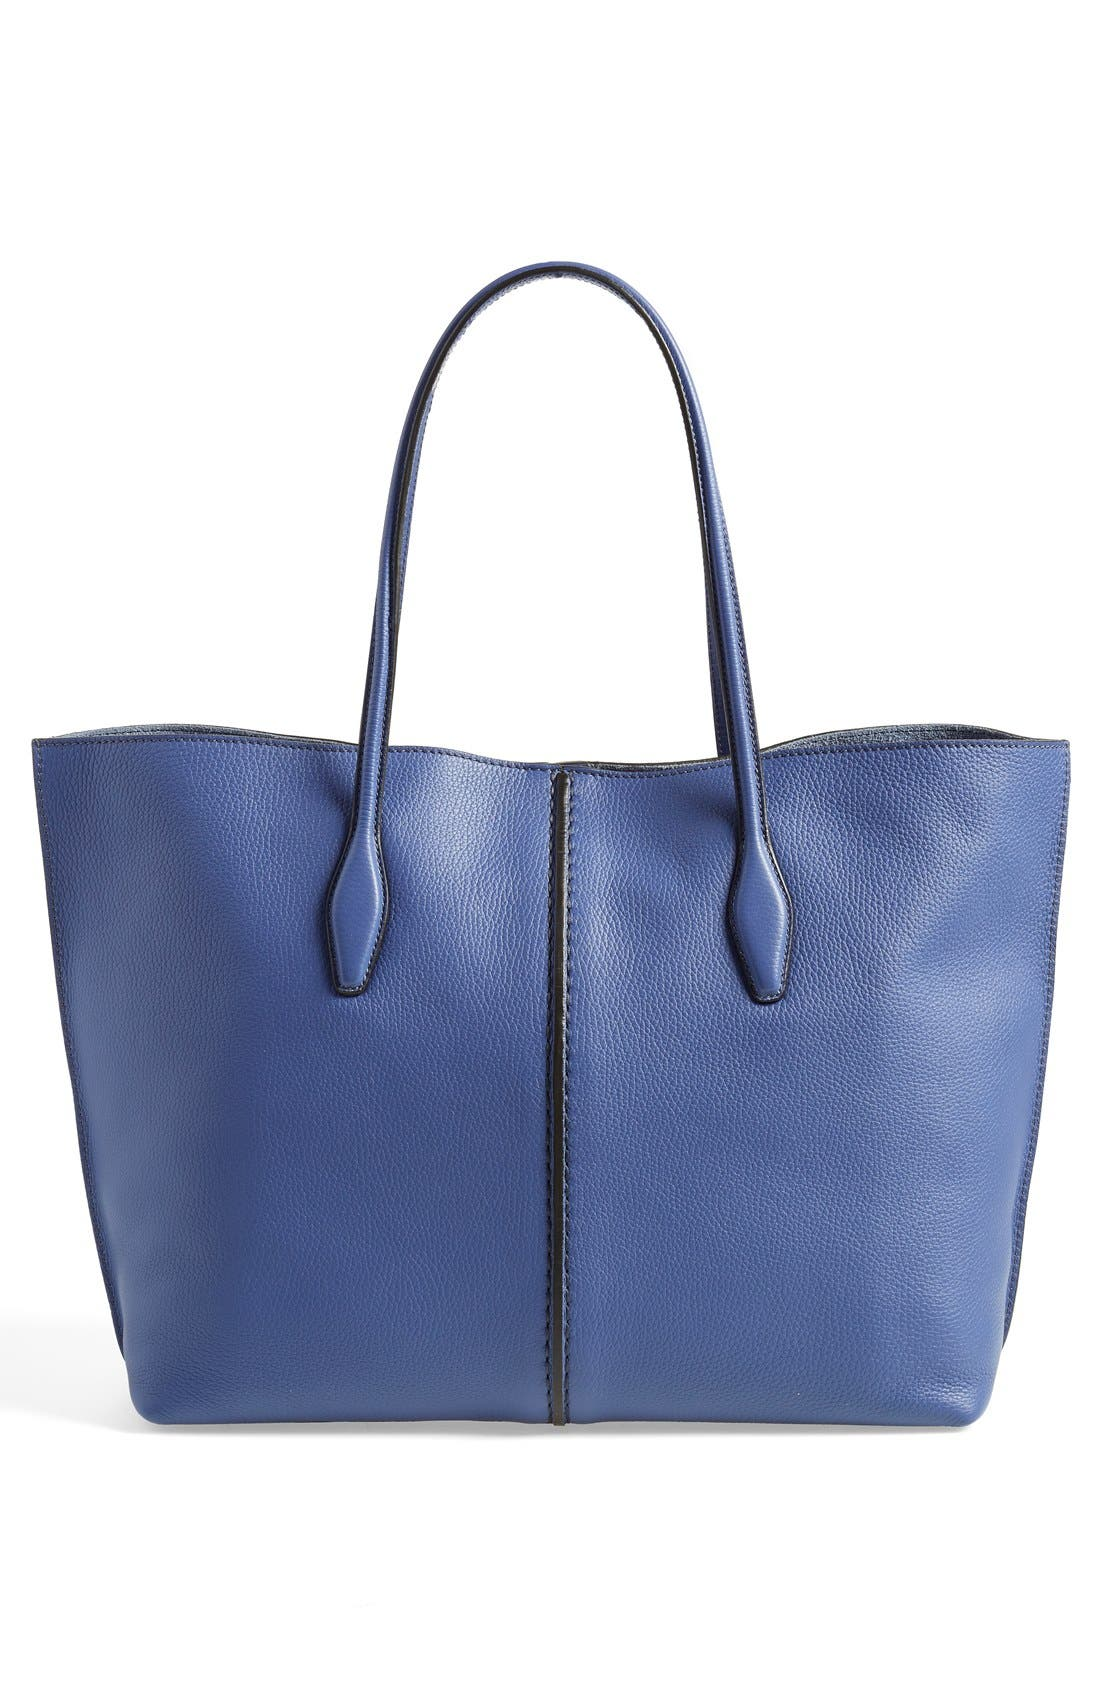 'Large Joy' Leather Tote,                             Alternate thumbnail 5, color,                             400